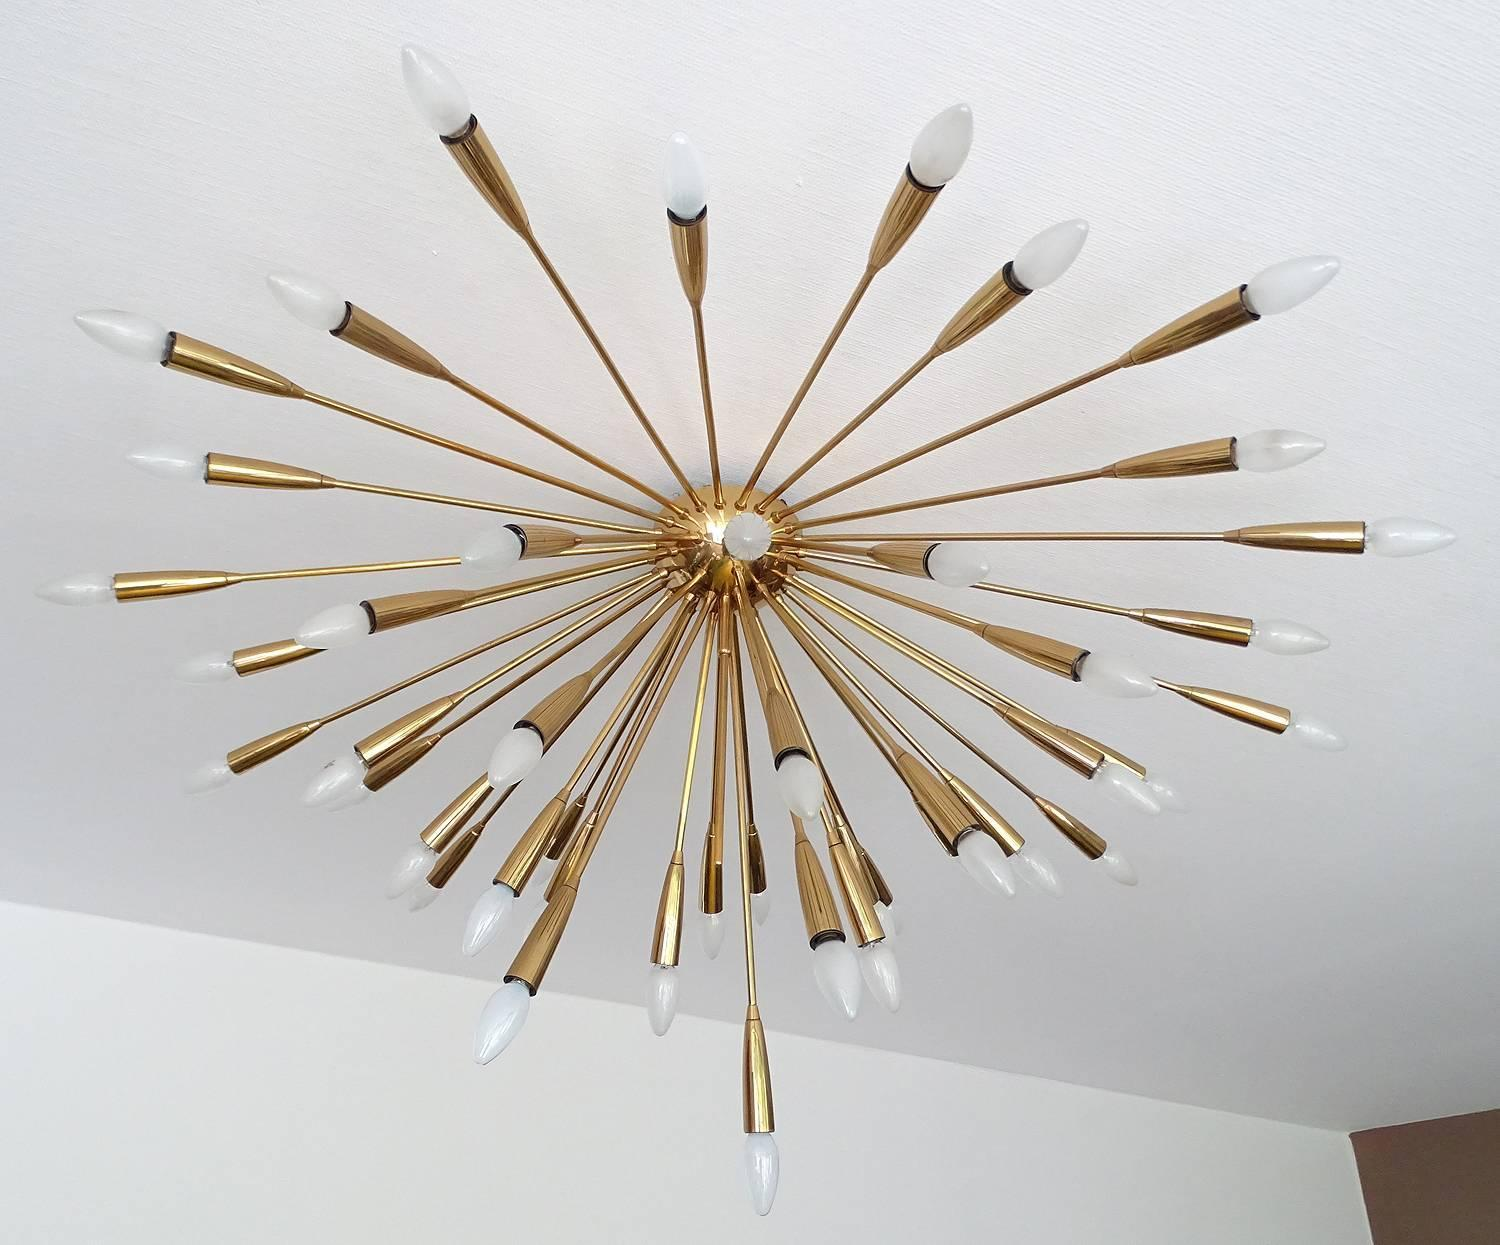 Large 44 light supernova kalmar brass sputnik sunburst chandelier large 44 light supernova kalmar brass sputnik sunburst chandelier 1950s for sale at 1stdibs aloadofball